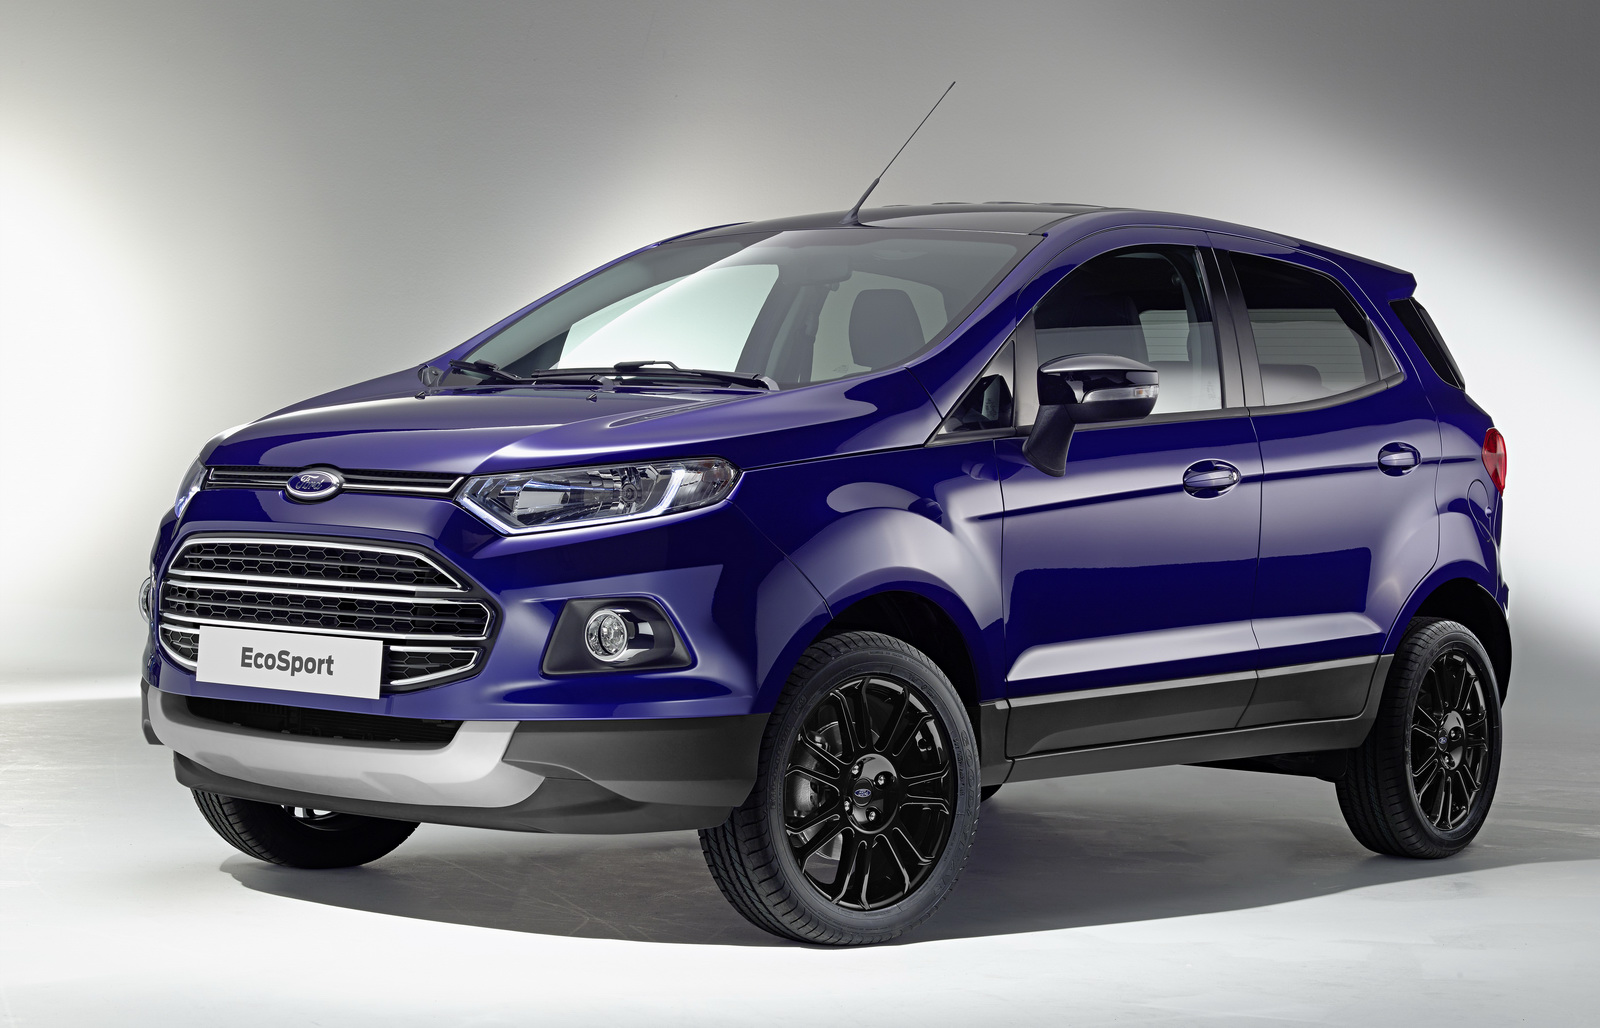 Ford Ecosport Dual Airbags Standard Across All Variants